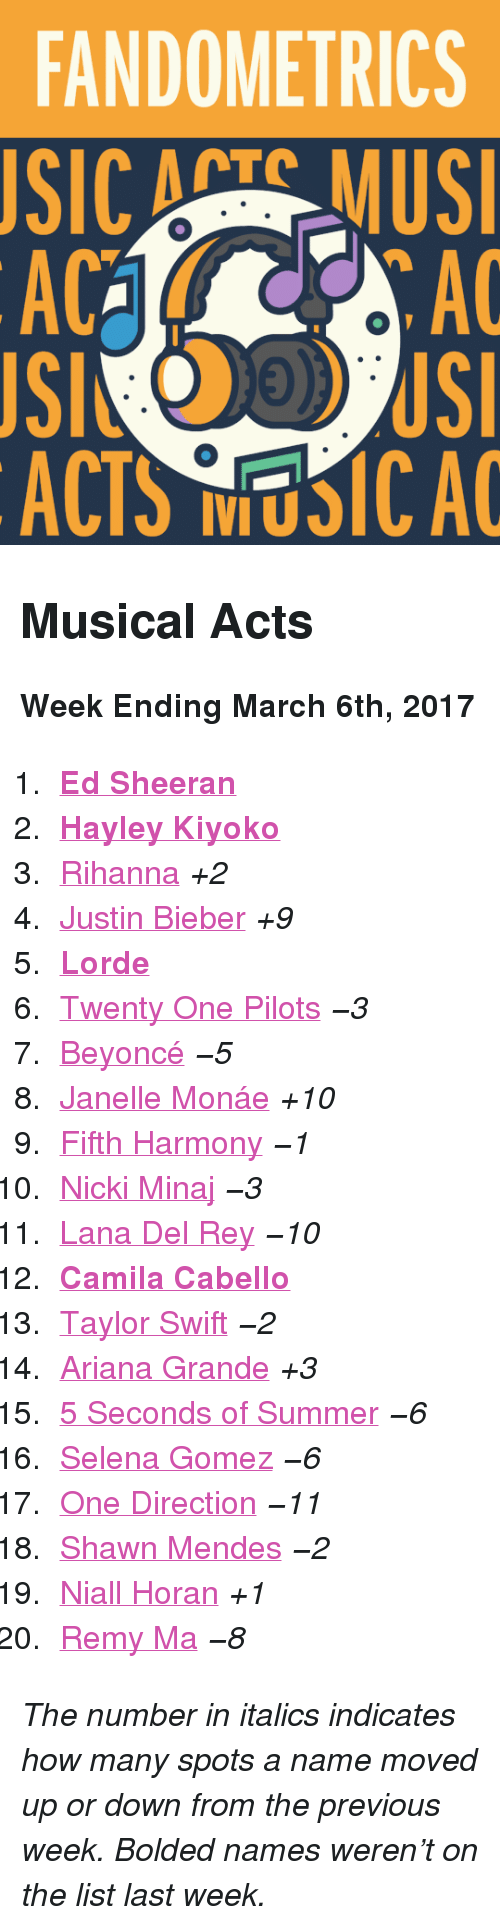 """Janelle Monae: FANDOMETRICS  SIC ATS MUS  AC  AC  ACTS NUSICA <h2>Musical Acts</h2><p><b>Week Ending March 6th, 2017</b></p><ol><li><b><a href=""""http://www.tumblr.com/search/ed%20sheeran"""">Ed Sheeran</a></b></li>  <li><a href=""""http://www.tumblr.com/search/hayley%20kiyoko""""><b>Hayley Kiyoko</b></a></li>  <li><a href=""""http://www.tumblr.com/search/rihanna"""">Rihanna</a><i>+2</i></li>  <li><a href=""""http://www.tumblr.com/search/justin%20bieber"""">Justin Bieber</a><i>+9</i></li>  <li><b><a href=""""http://www.tumblr.com/search/lorde"""">Lorde</a></b></li>  <li><a href=""""http://www.tumblr.com/search/twenty%20one%20pilots"""">Twenty One Pilots</a><i><i>−3</i></i></li>  <li><a href=""""http://www.tumblr.com/search/beyonce"""">Beyoncé</a><i><i>−5</i></i></li>  <li><a href=""""http://www.tumblr.com/search/janelle%20monae"""">Janelle Monáe</a><i>+10</i></li>  <li><a href=""""http://www.tumblr.com/search/fifth%20harmony"""">Fifth Harmony</a><i><i>−1</i></i></li>  <li><a href=""""http://www.tumblr.com/search/nicki%20minaj"""">Nicki Minaj</a><i><i>−3</i></i></li>  <li><a href=""""http://www.tumblr.com/search/lana%20del%20rey"""">Lana Del Rey</a><i><i>−10</i></i></li>  <li><b><a href=""""http://www.tumblr.com/search/camila%20cabello"""">Camila Cabello</a></b></li>  <li><a href=""""http://www.tumblr.com/search/taylor%20swift"""">Taylor Swift</a><i><i>−2</i></i></li>  <li><a href=""""http://www.tumblr.com/search/ariana%20grande"""">Ariana Grande</a><i>+3</i></li>  <li><a href=""""http://www.tumblr.com/search/5sos"""">5 Seconds of Summer</a><i><i>−6</i></i></li>  <li><a href=""""http://www.tumblr.com/search/selena%20gomez"""">Selena Gomez</a><i><i>−6</i></i></li>  <li><a href=""""http://www.tumblr.com/search/one%20direction"""">One Direction</a><i><i>−11</i></i></li>  <li><a href=""""http://www.tumblr.com/search/shawn%20mendes"""">Shawn Mendes</a><i><i>−2</i></i></li>  <li><a href=""""http://www.tumblr.com/search/niall%20horan"""">Niall Horan</a><i>+1</i></li>  <li><a href=""""http://www.tumblr.com/search/remy%20ma"""">Remy Ma</a><i><i>−8</i></i></li></ol><p><i>The number in italics """